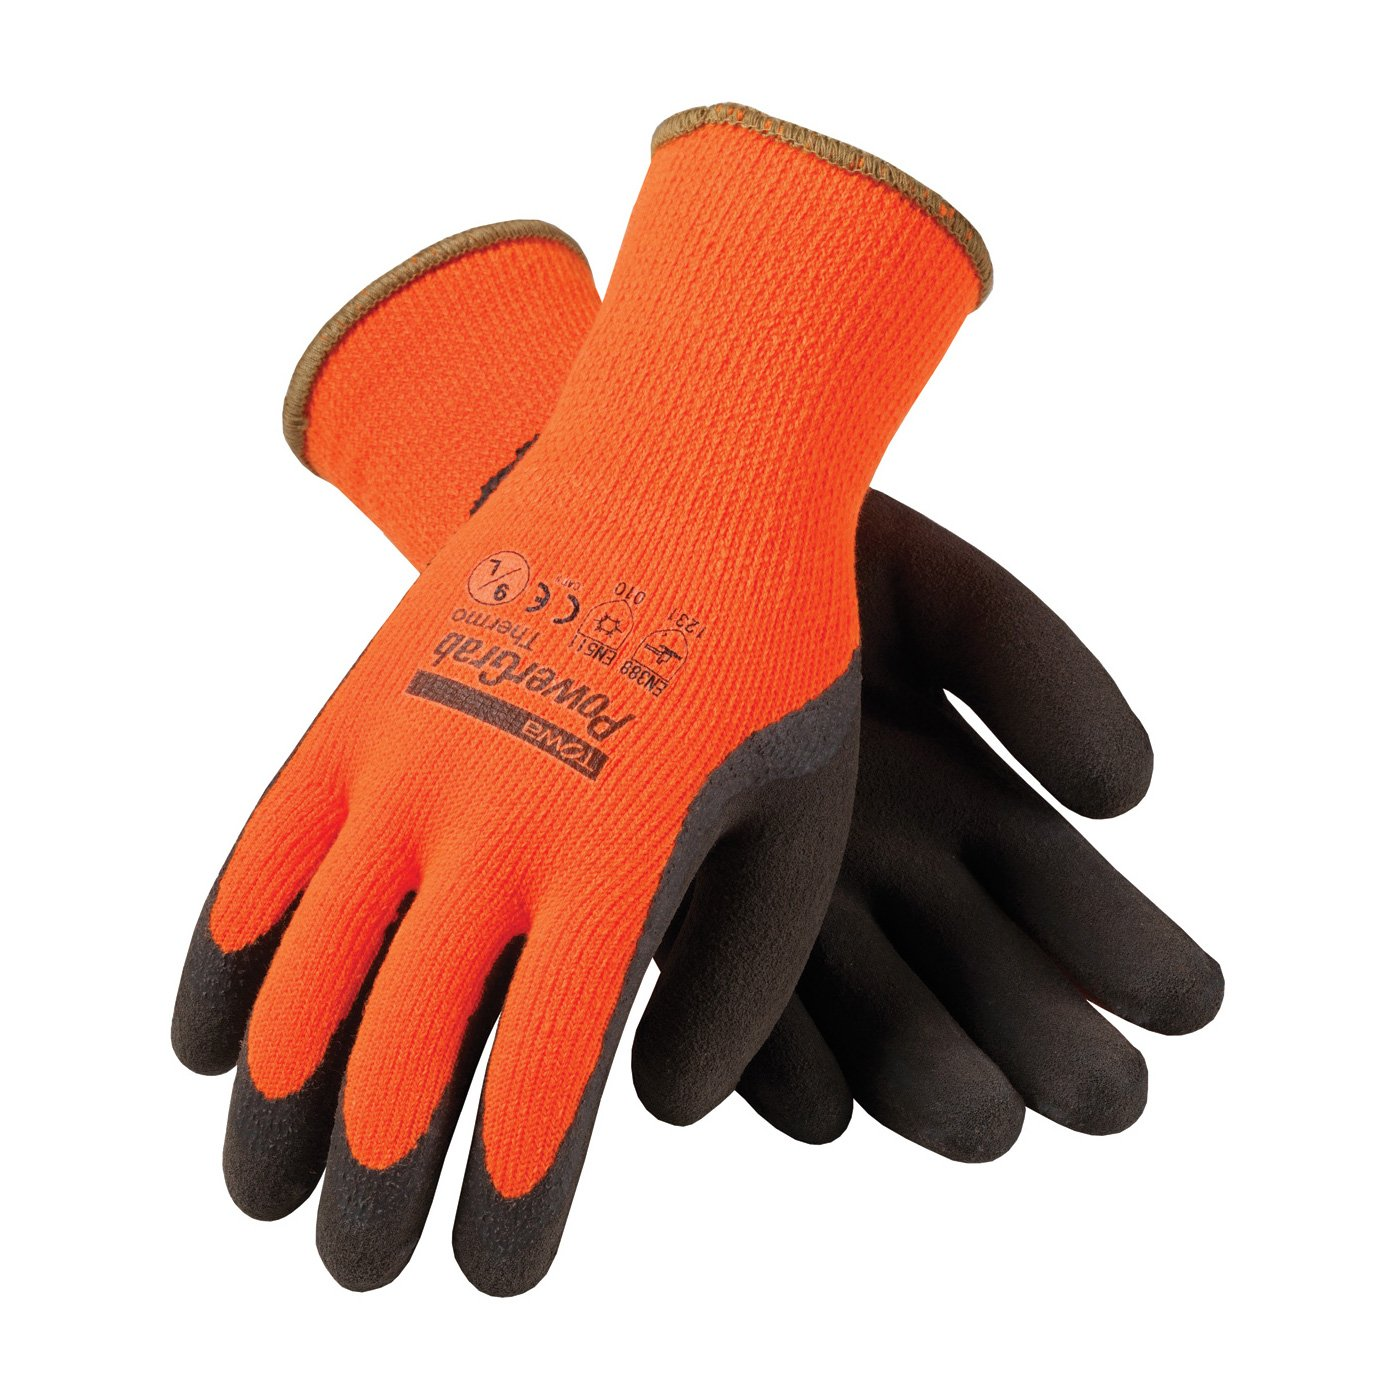 PIP Protective Industrial Products 41-1400-L PIP 41-1400-L Hi-Vis Orange Terry Gloves, L, Hi-Vis Orange (Pack of 48)